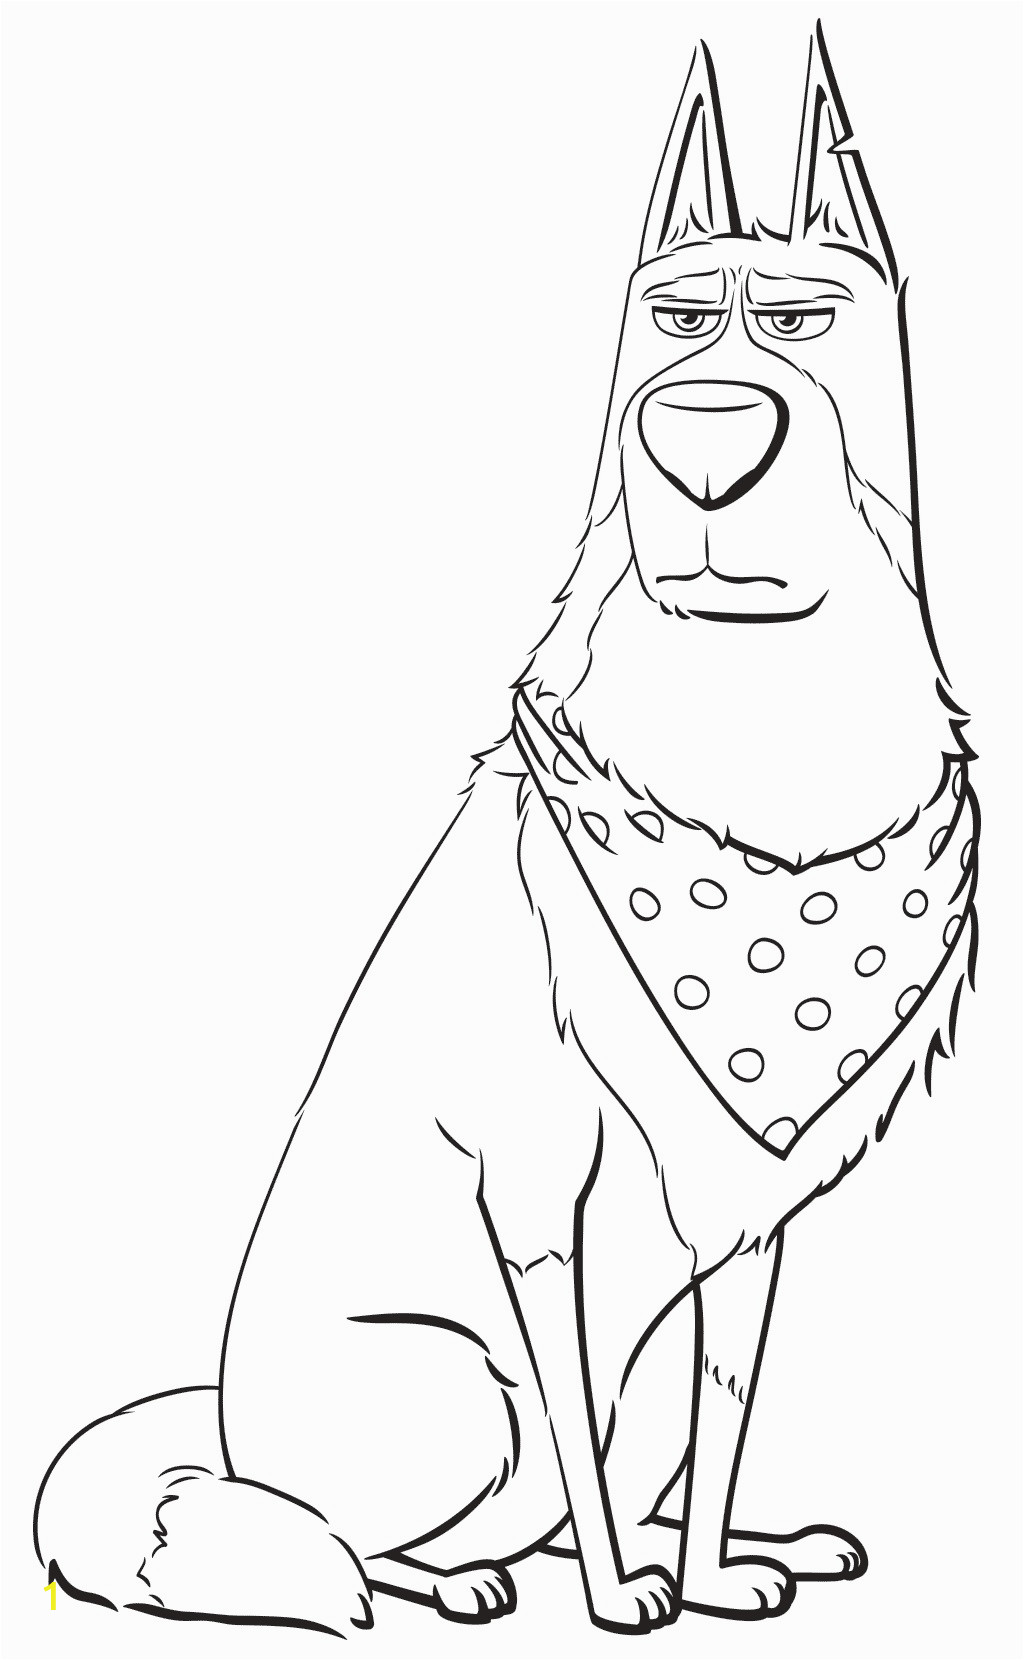 the secret life of pets coloring pages print them for free